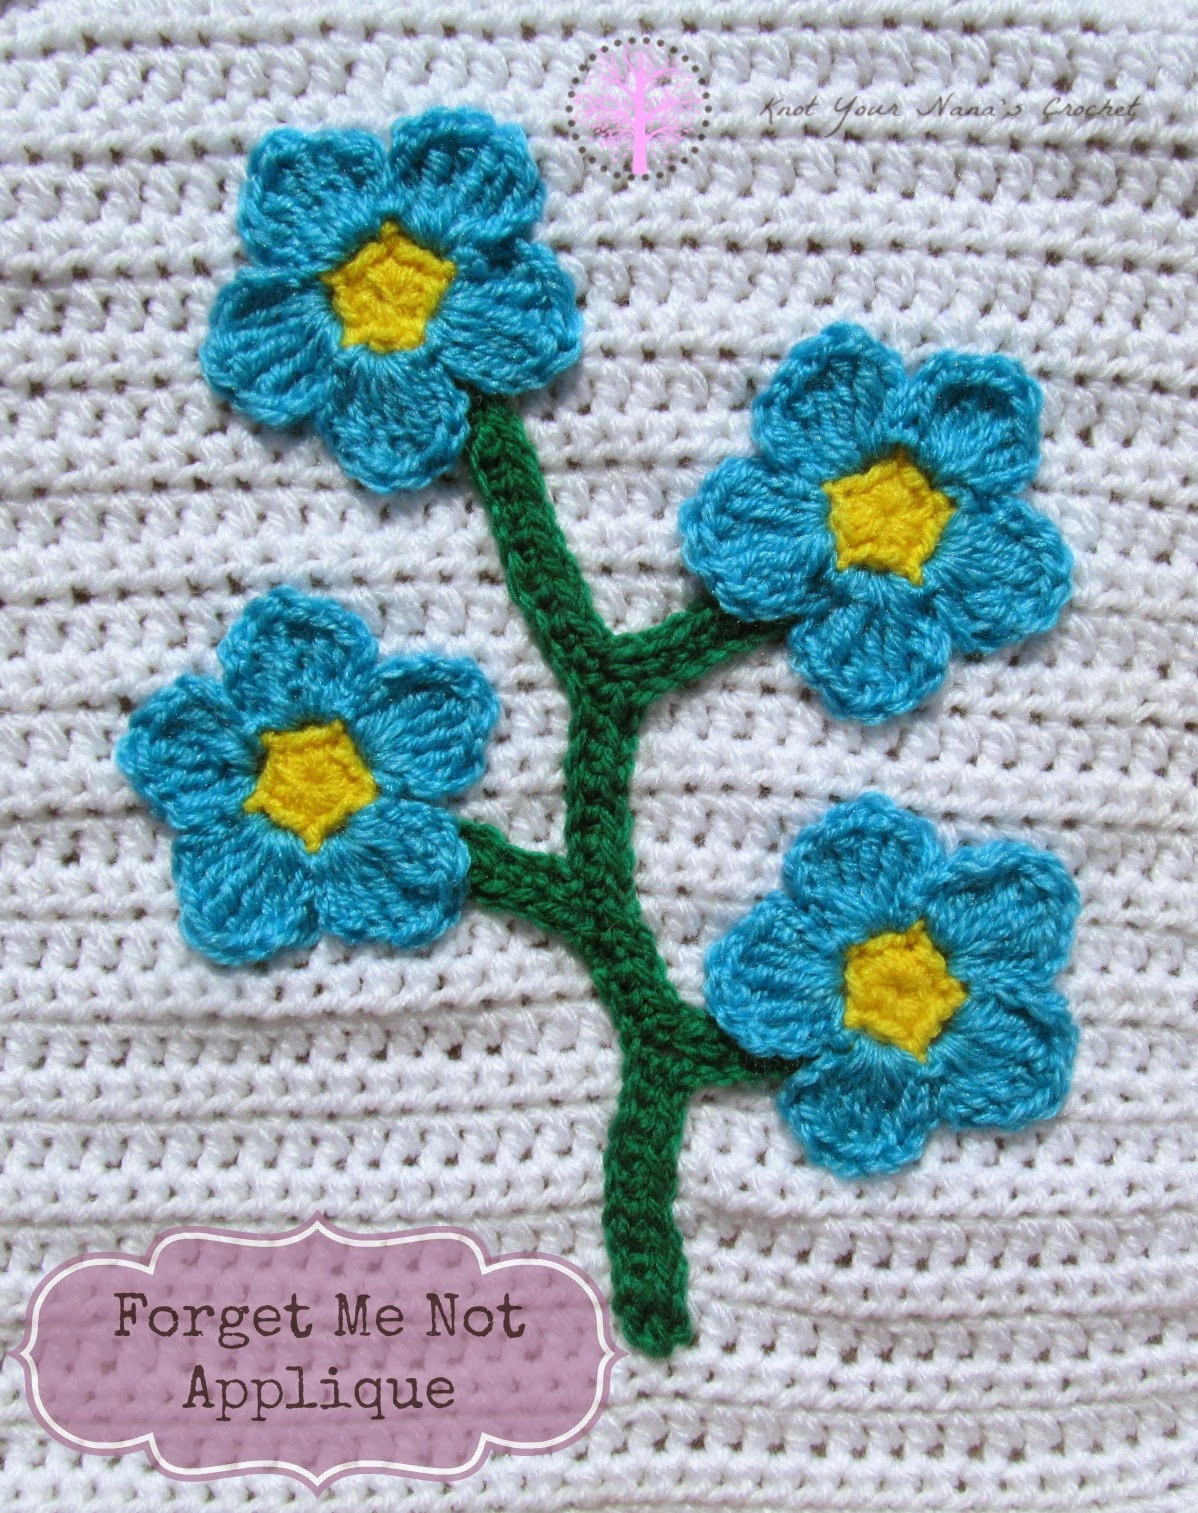 Crochet Forget Me Not Applique